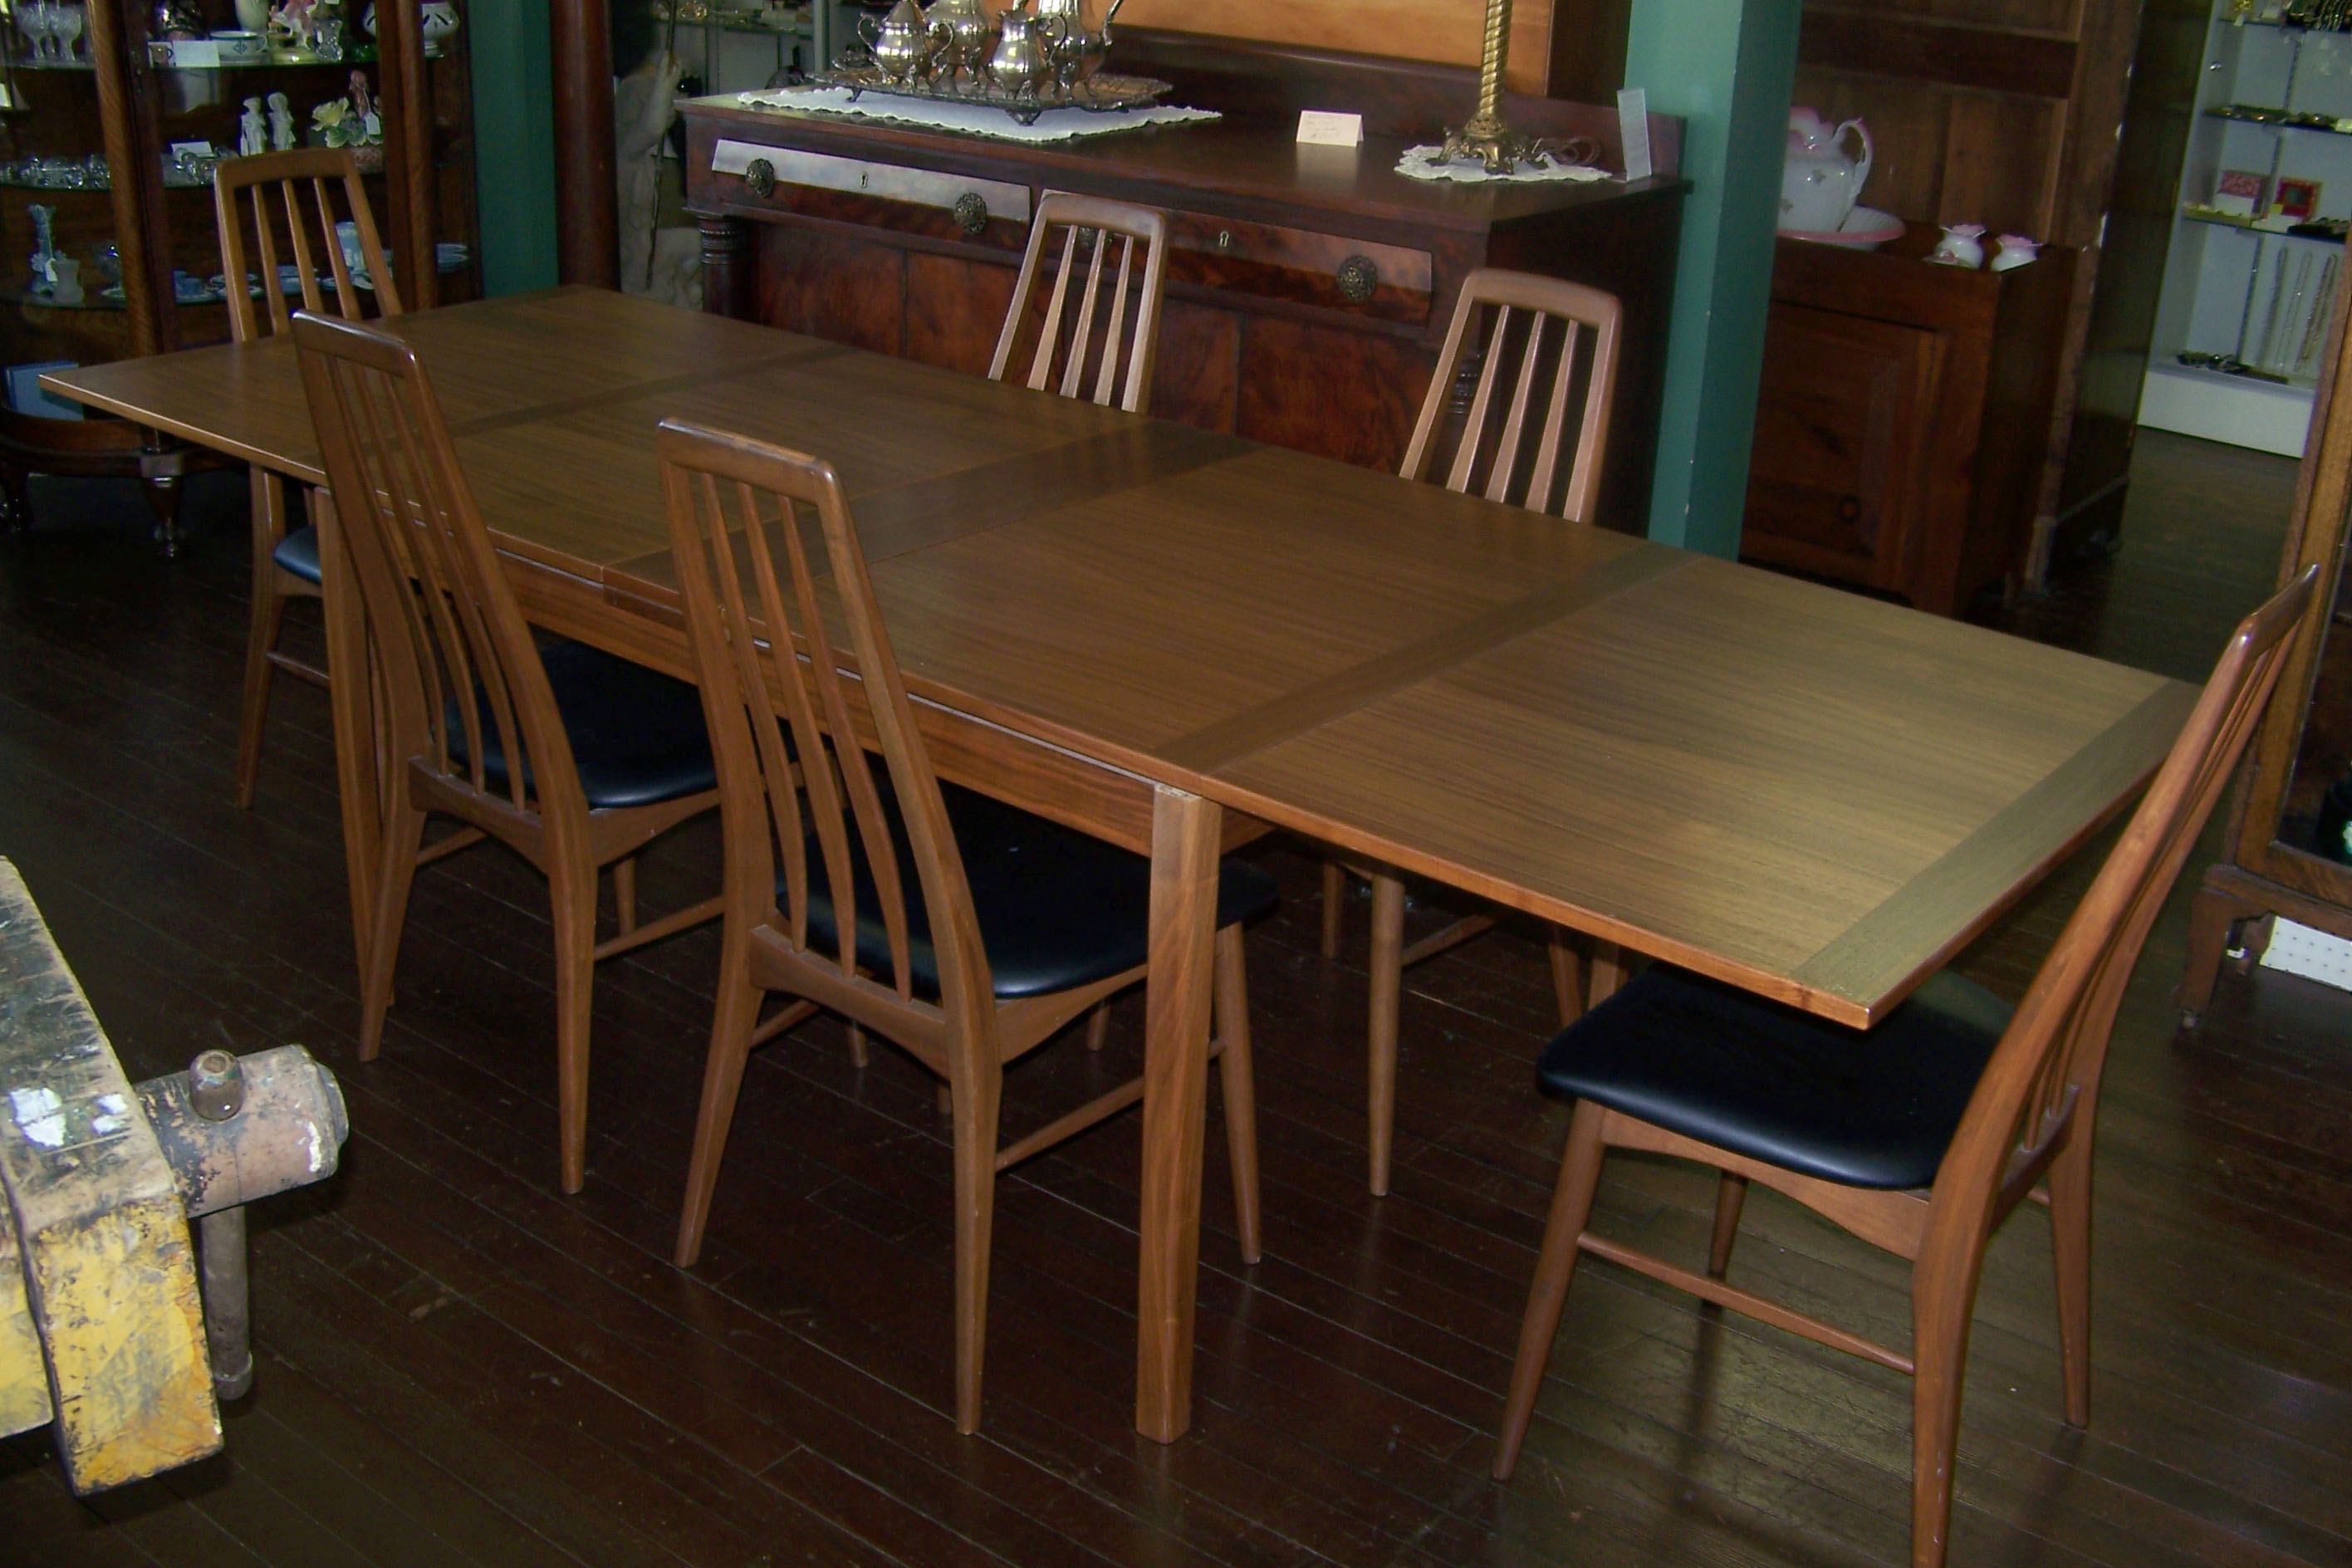 MID CENTURY MODERN TABLE CHAIRS